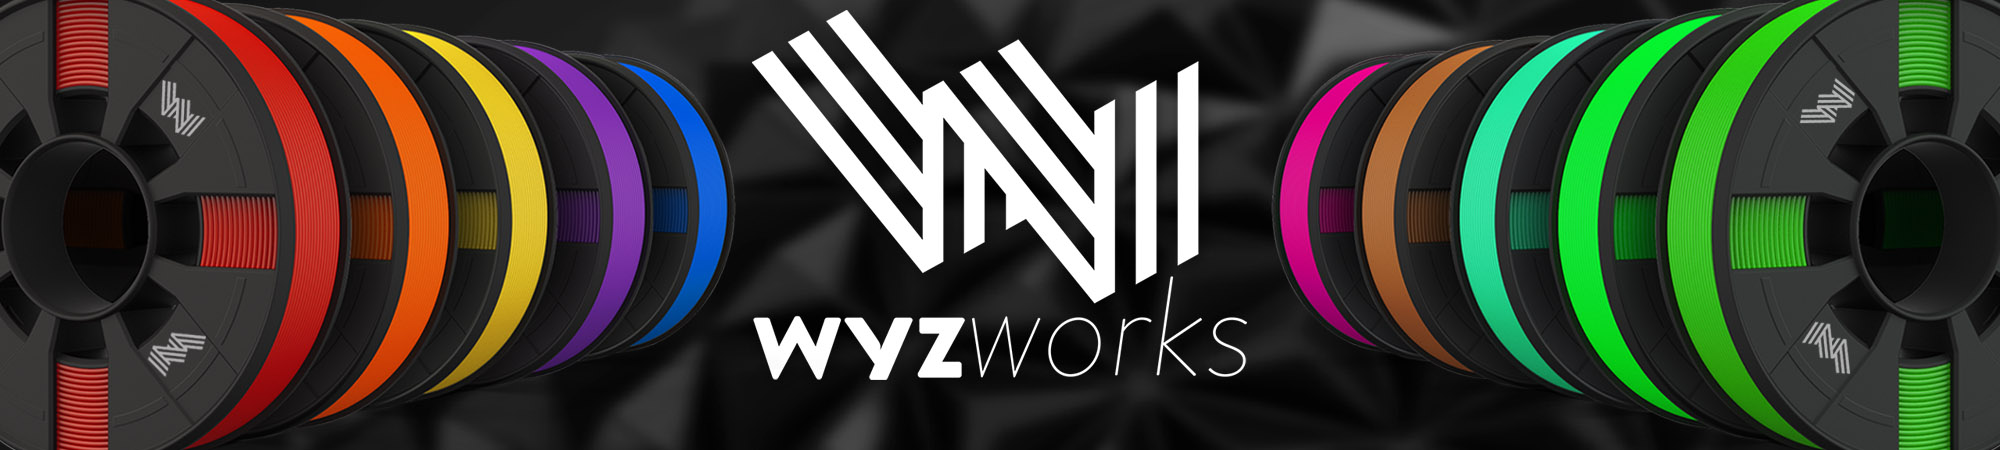 WYZWORKS-HOME-BANNER-WYZ3D